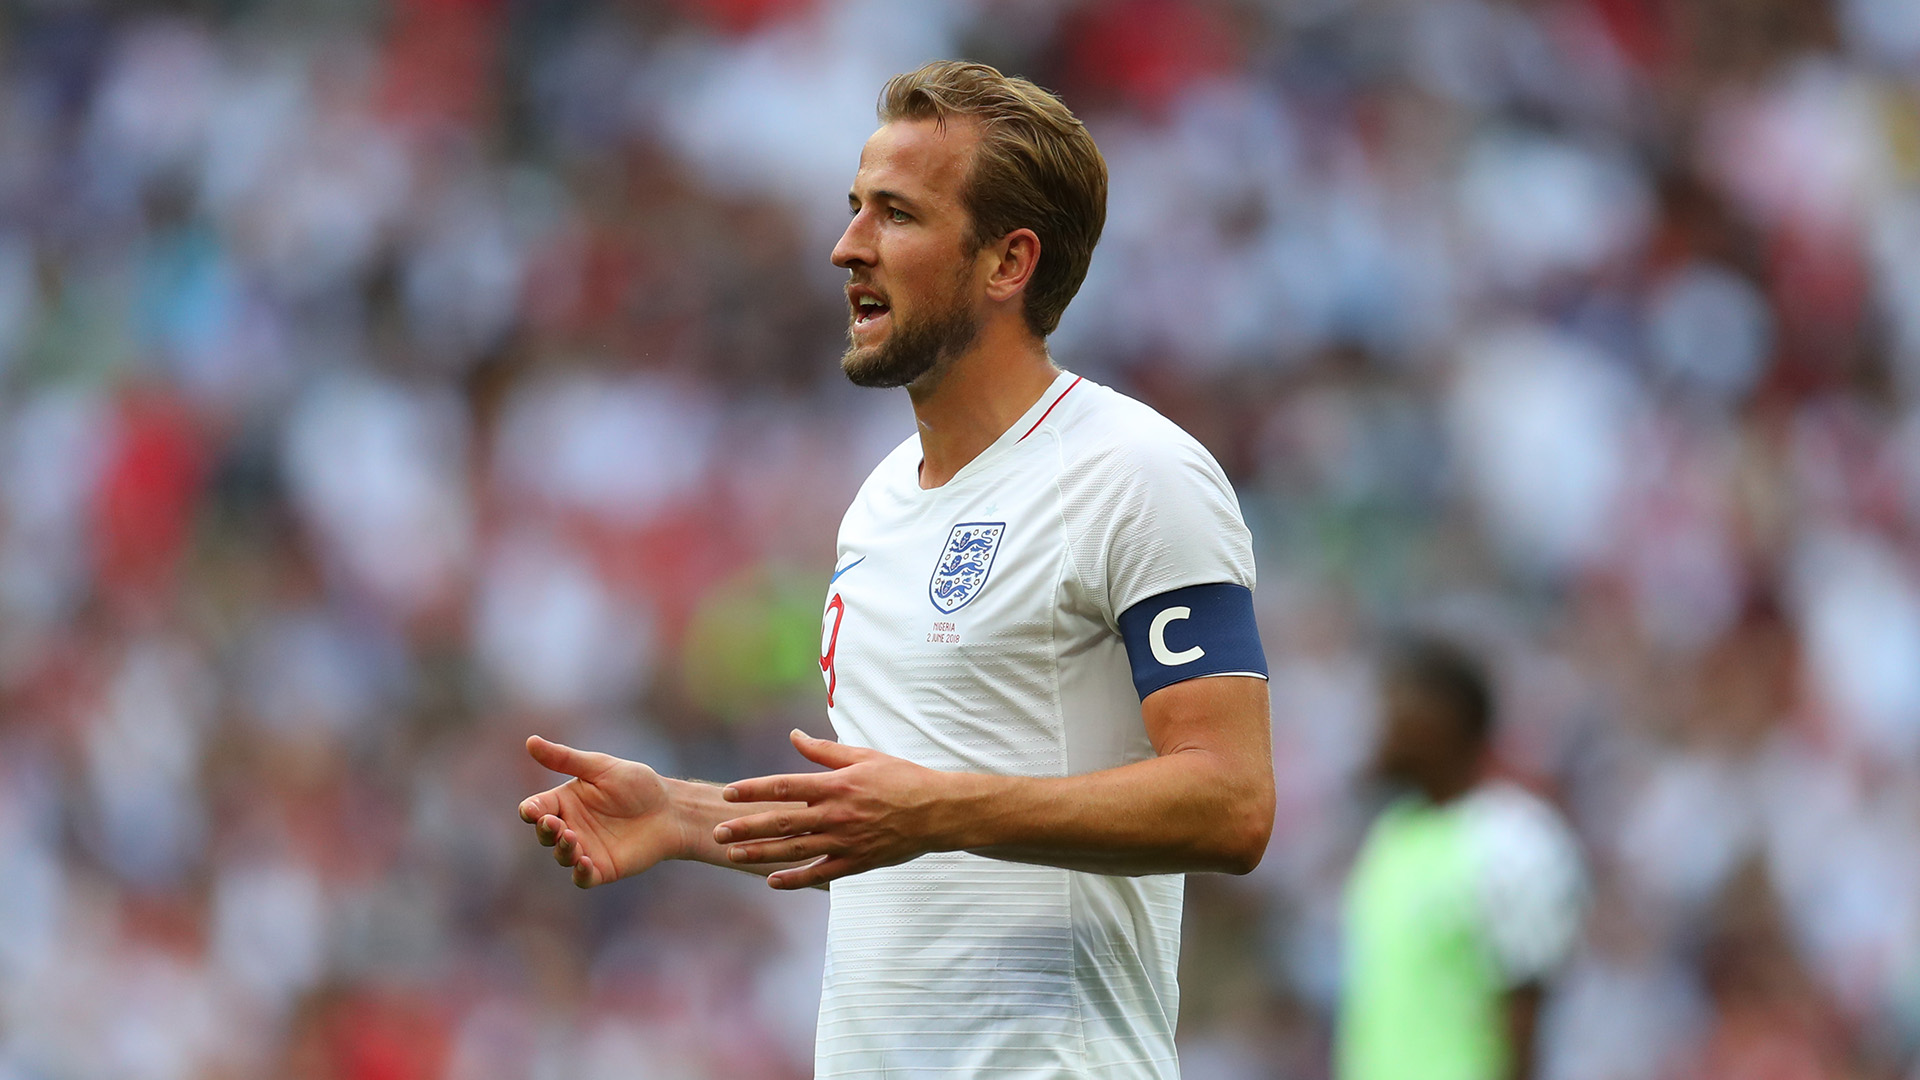 Late header from Kane gives England win over Tunisia